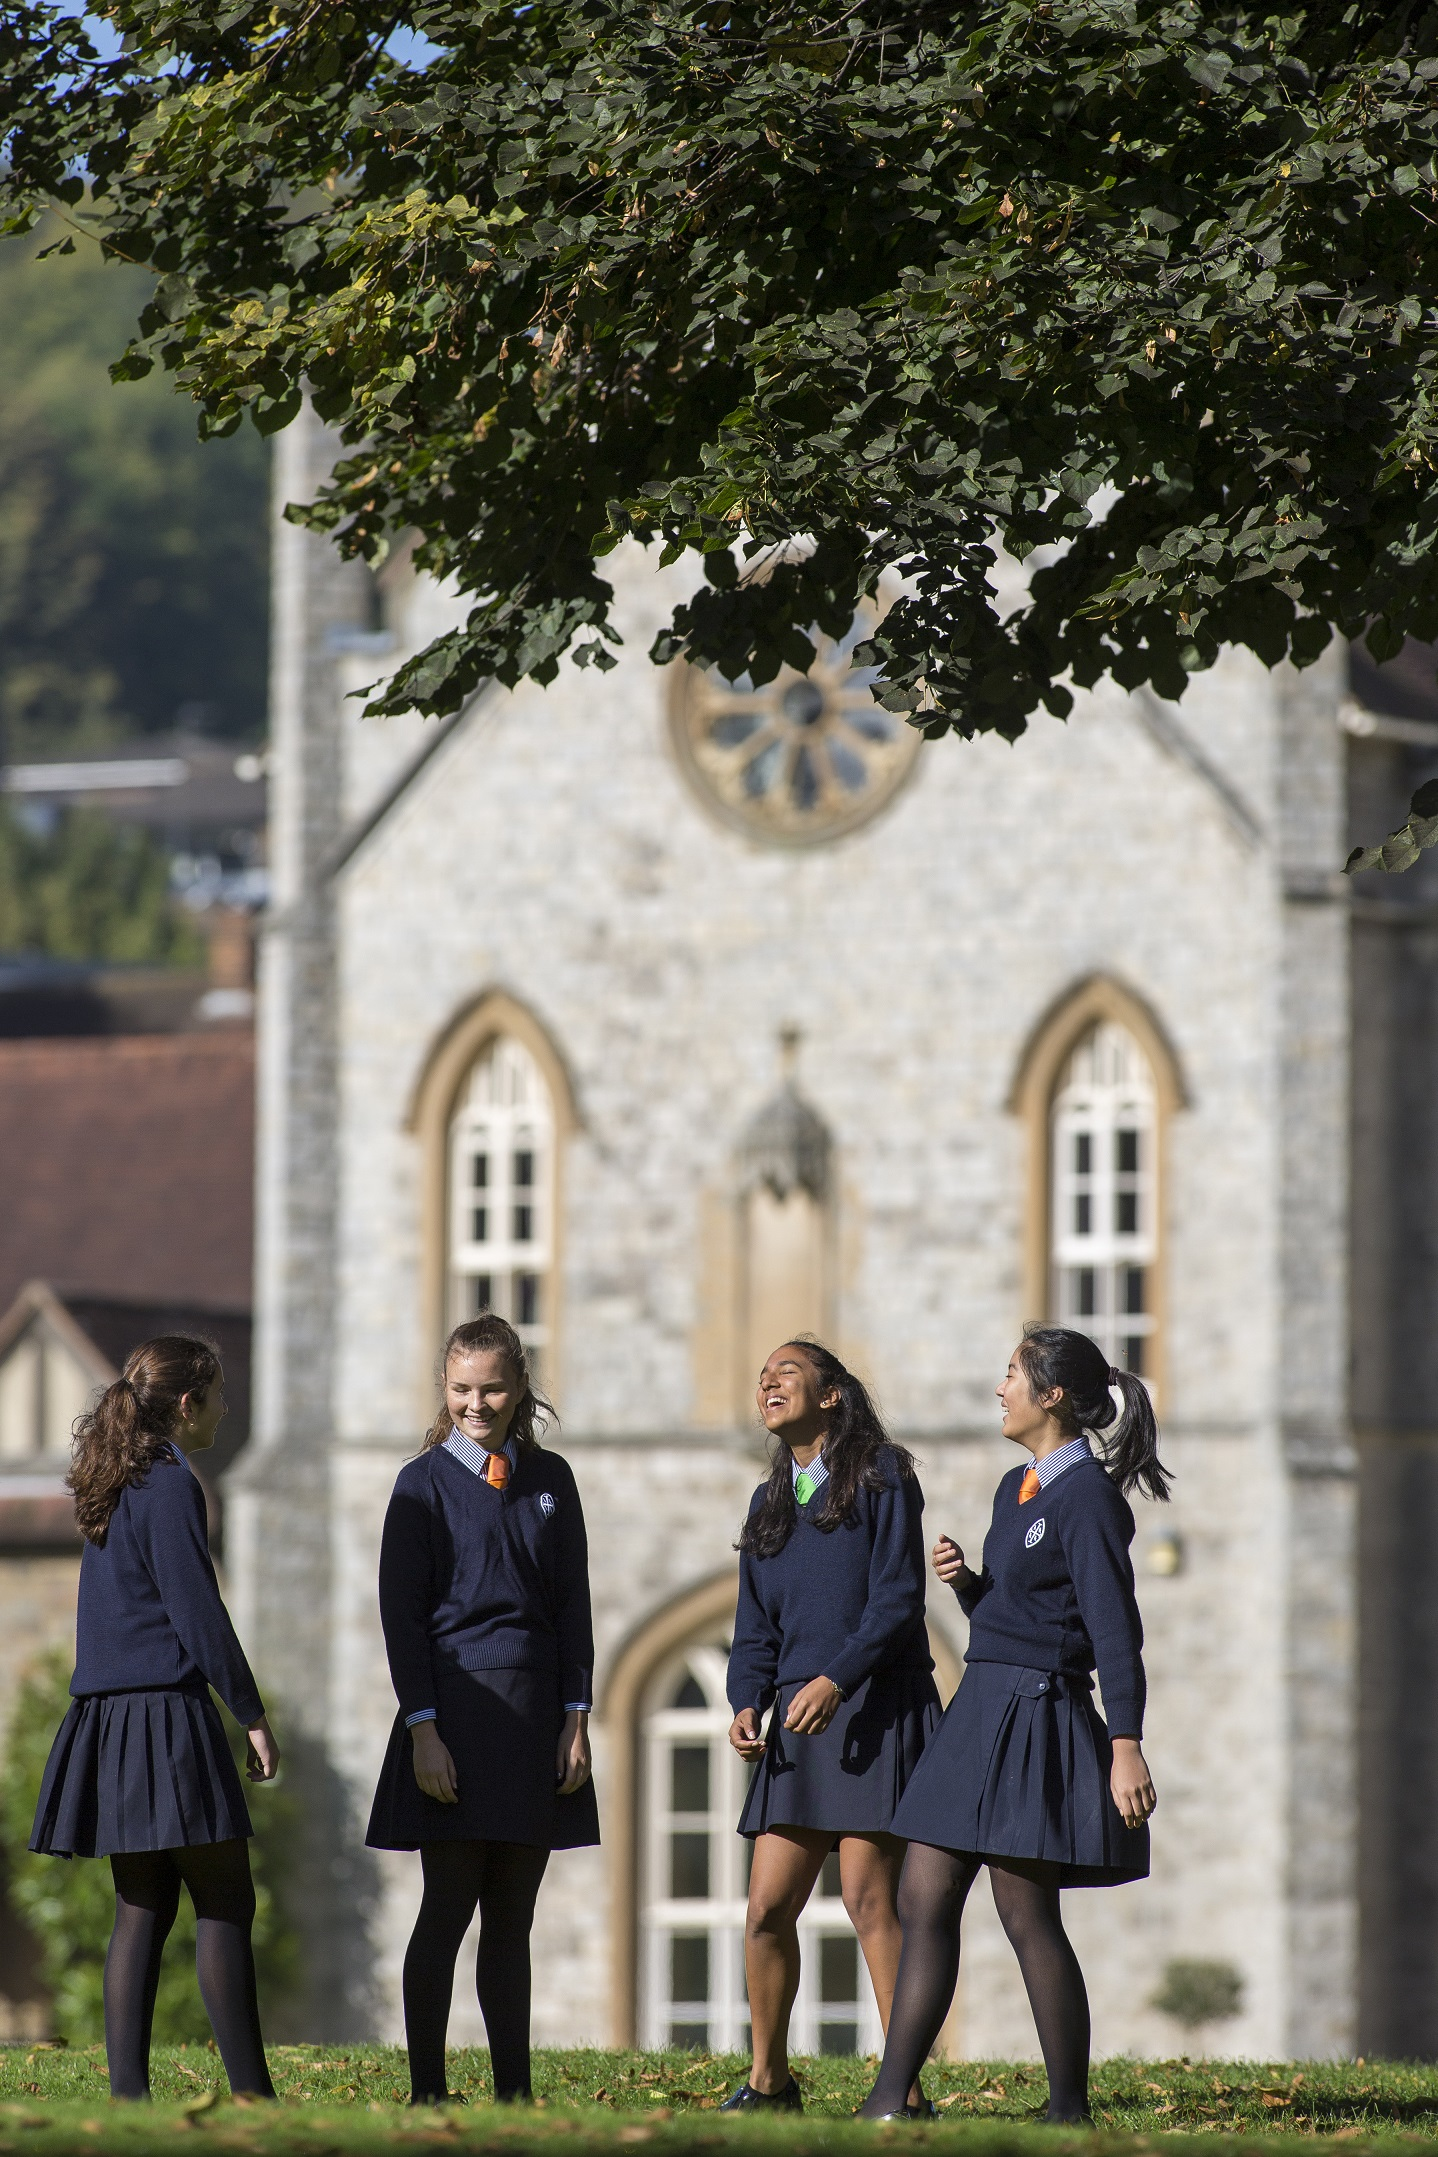 wycombe girls Wycombe abbey wycombe abbey is a full boarding school for girls aged 11-18 years old established in 1896 as one of the first schools for girls, it remains committed to providing young women.